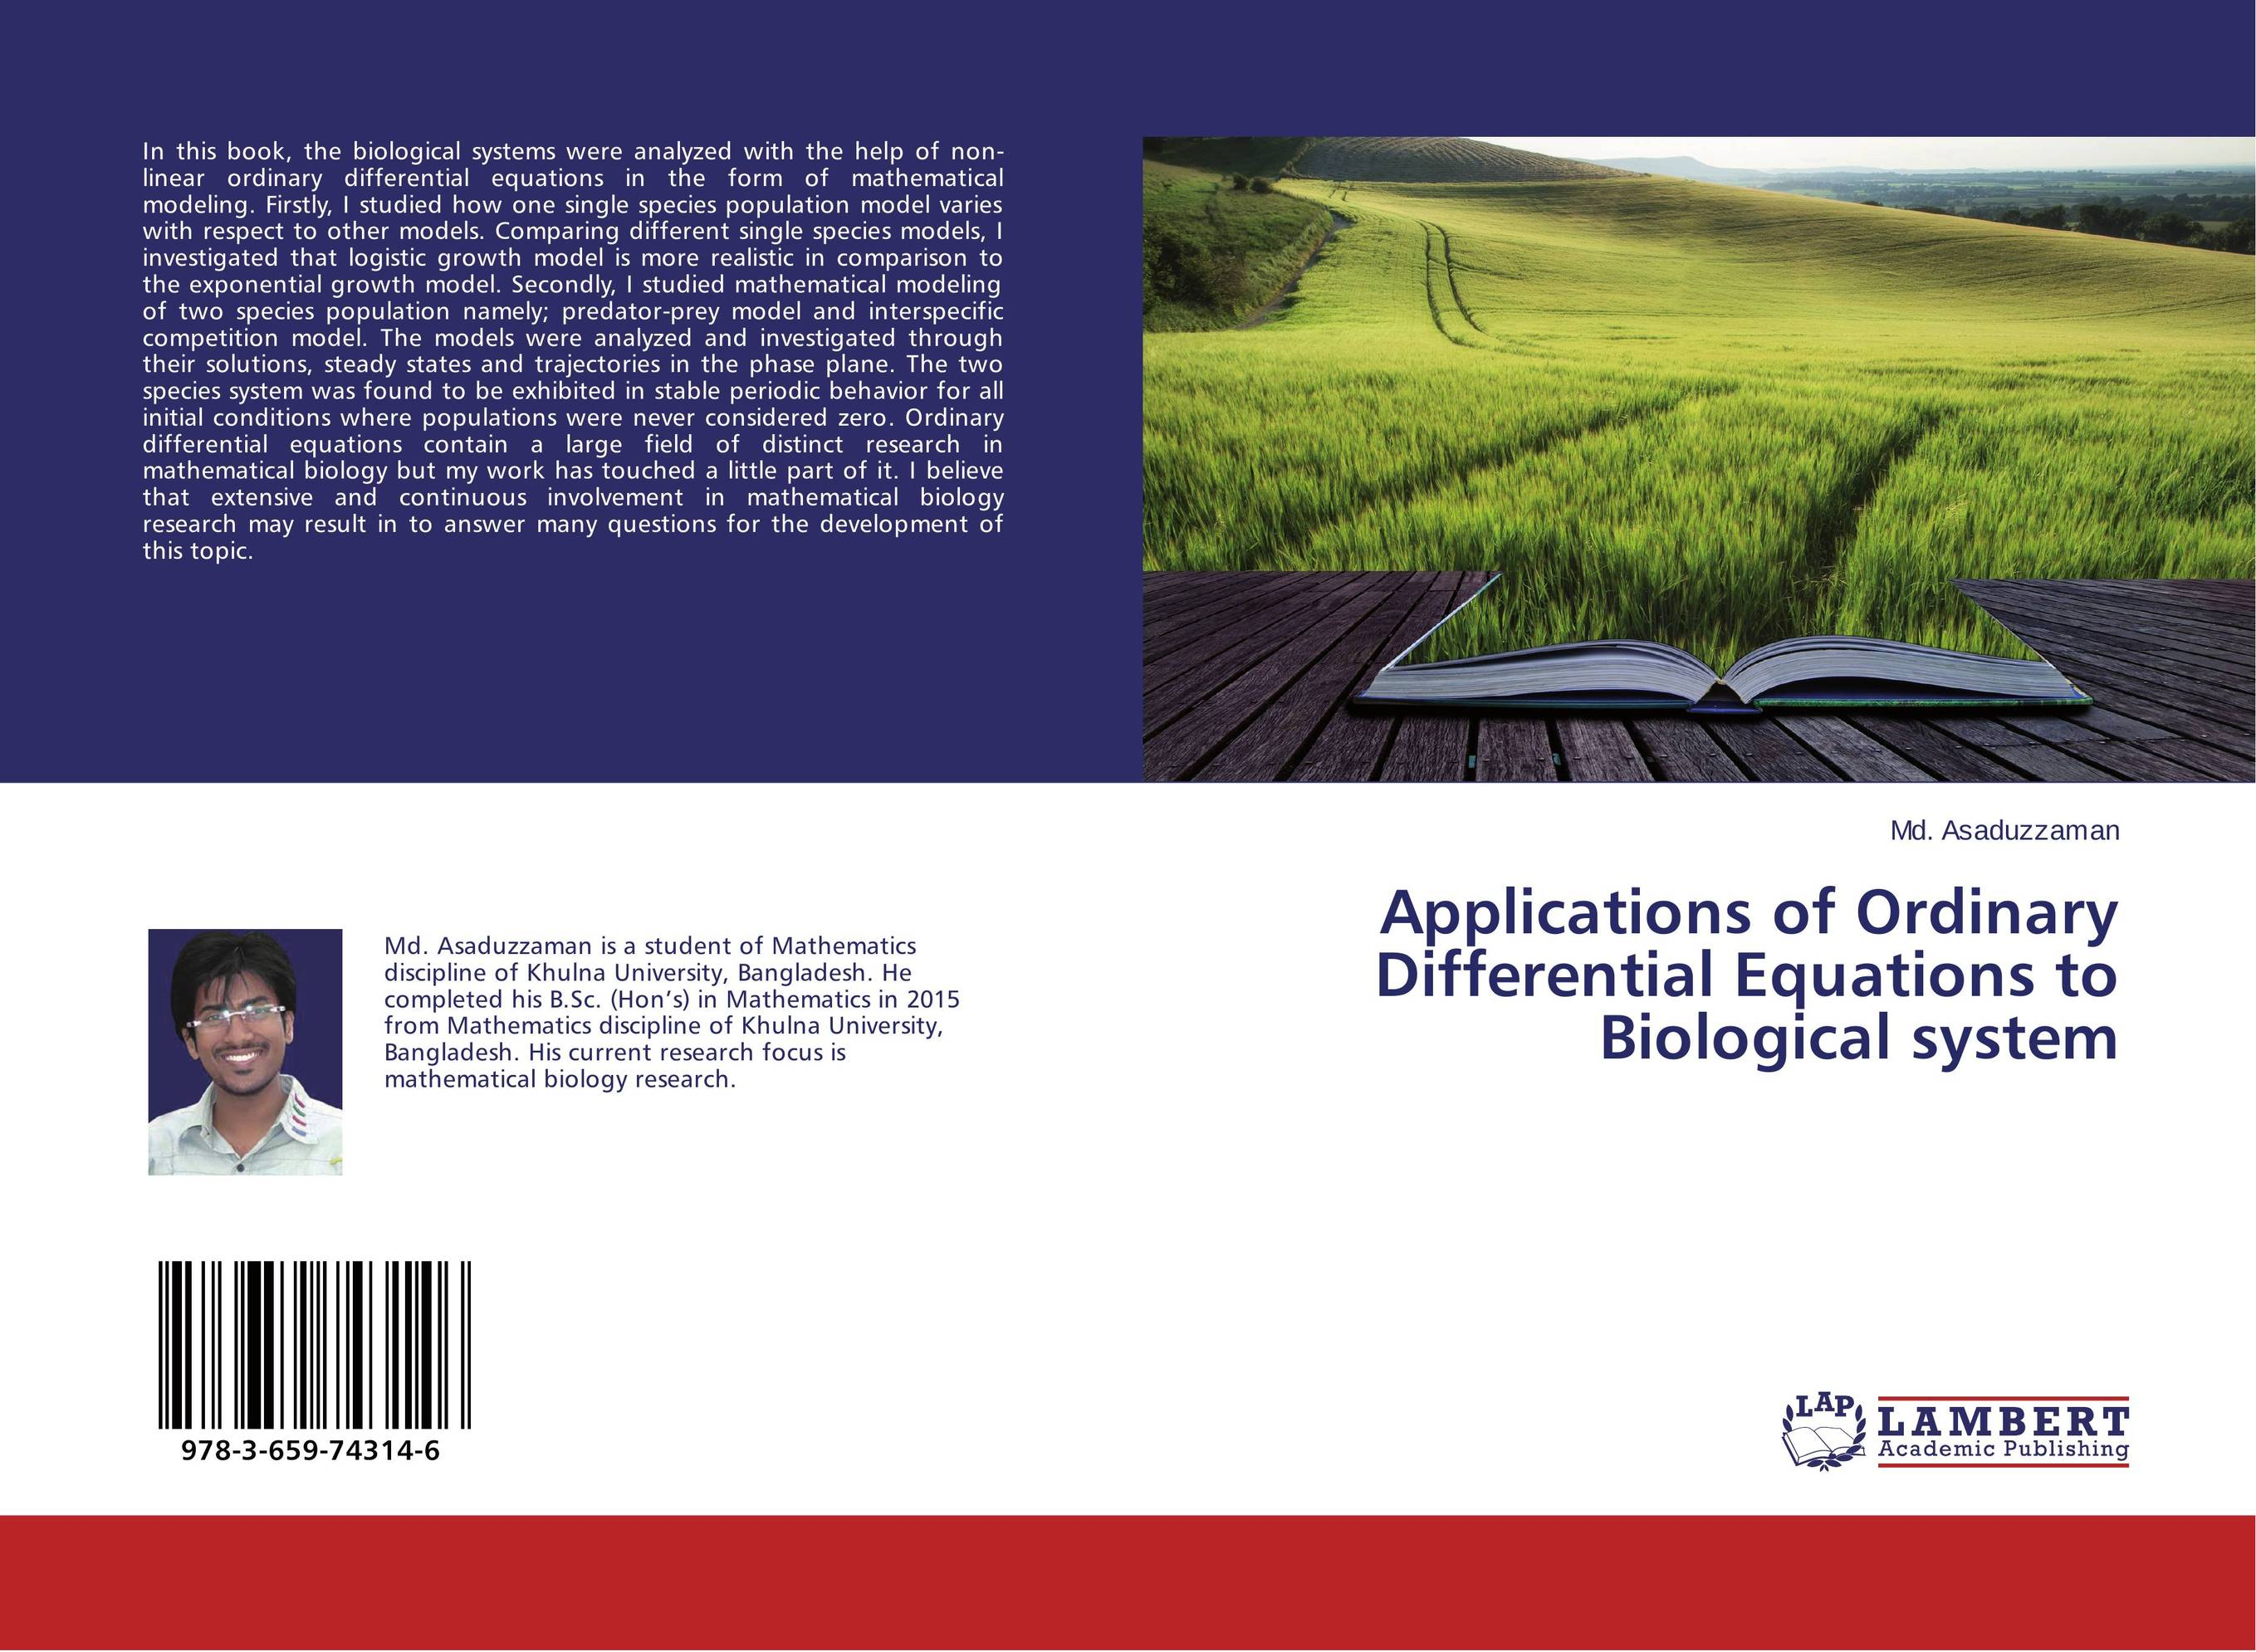 Applications of Ordinary Differential Equations to Biological system